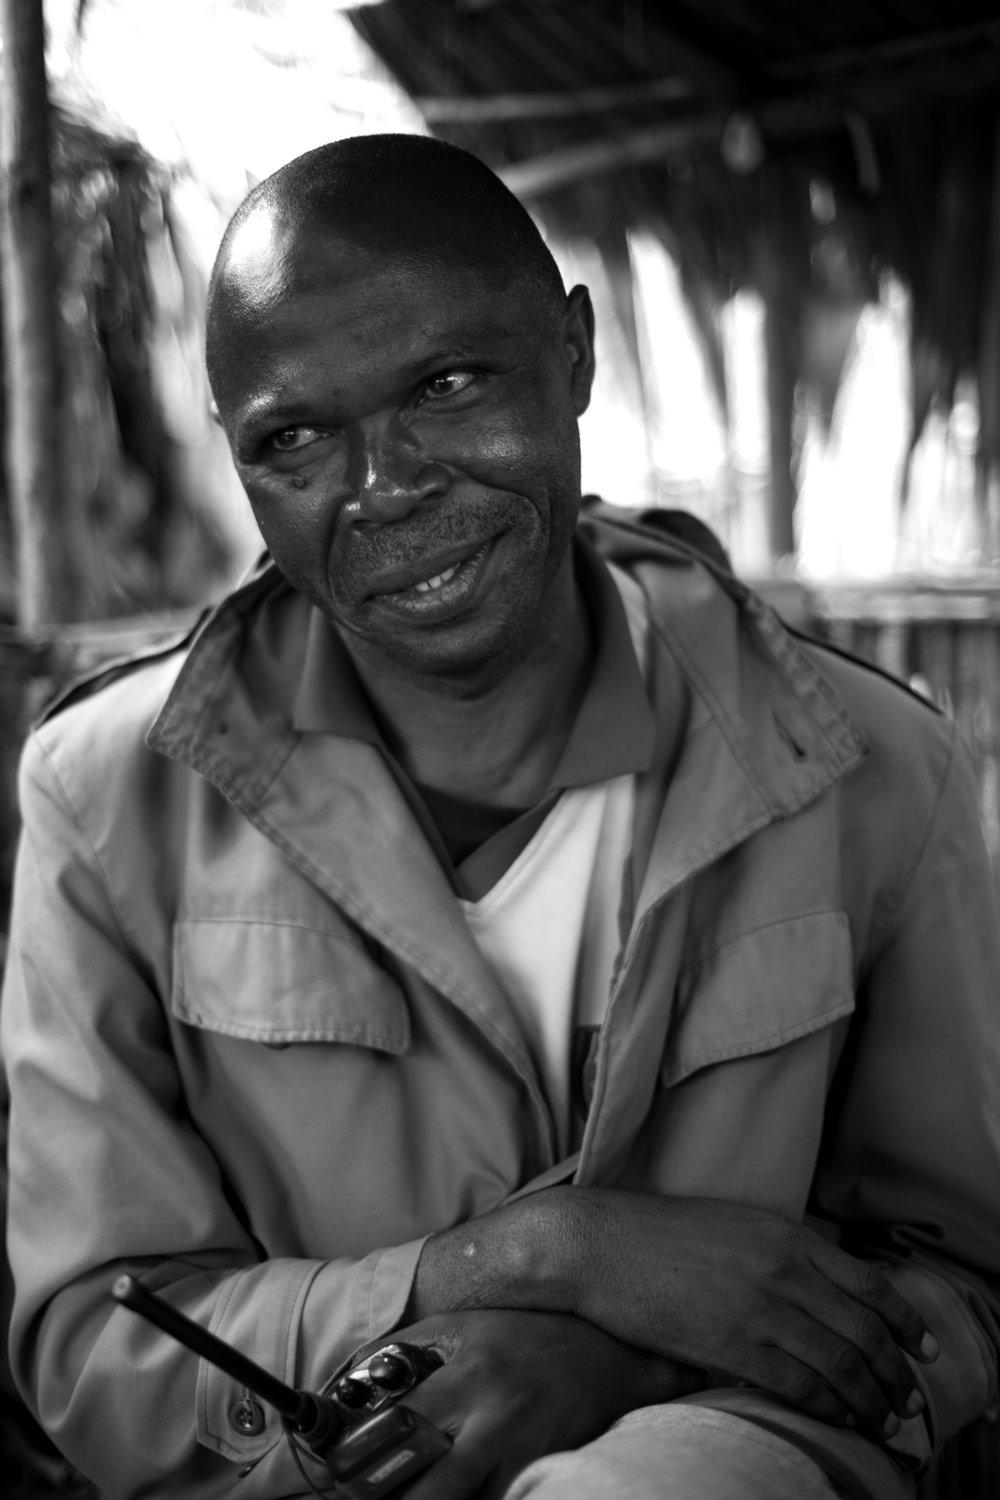 Emiliano Tidona_Series Nord Kivu Portraits_Untitled 4.jpg